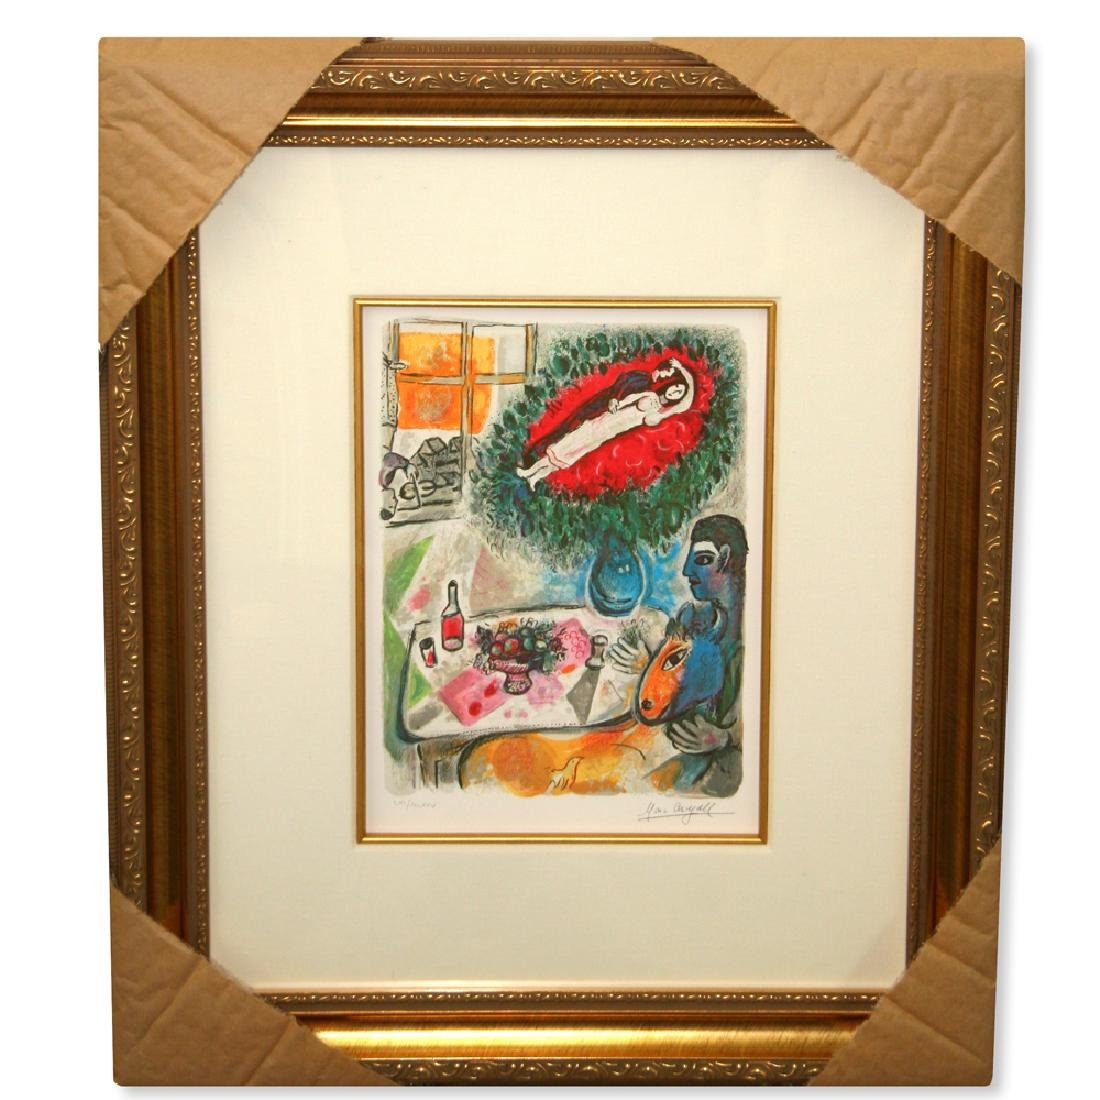 Chagall (After) 'Reverie' Museum Framed Giclee-Limited